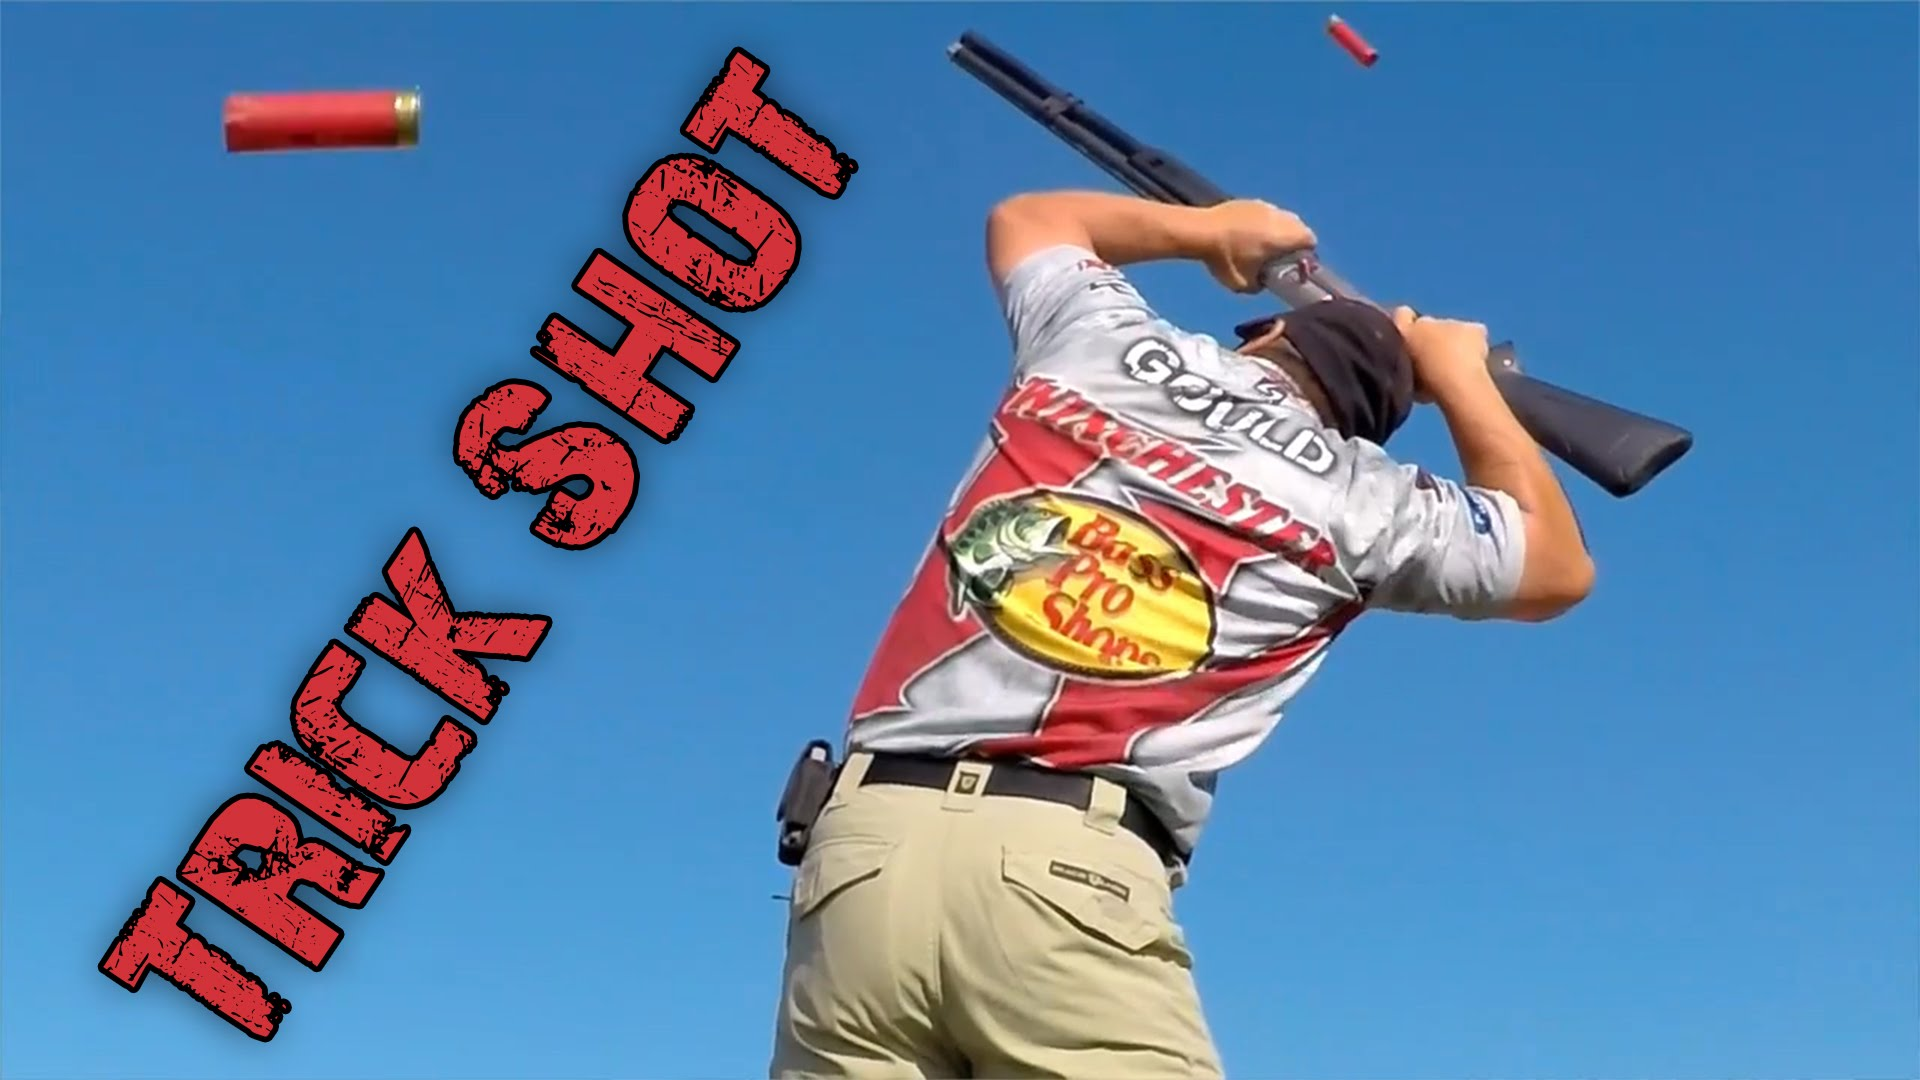 A New World Record - 7 Clays Shot with the Gun Upside Down Over the Head | Gould Brothers